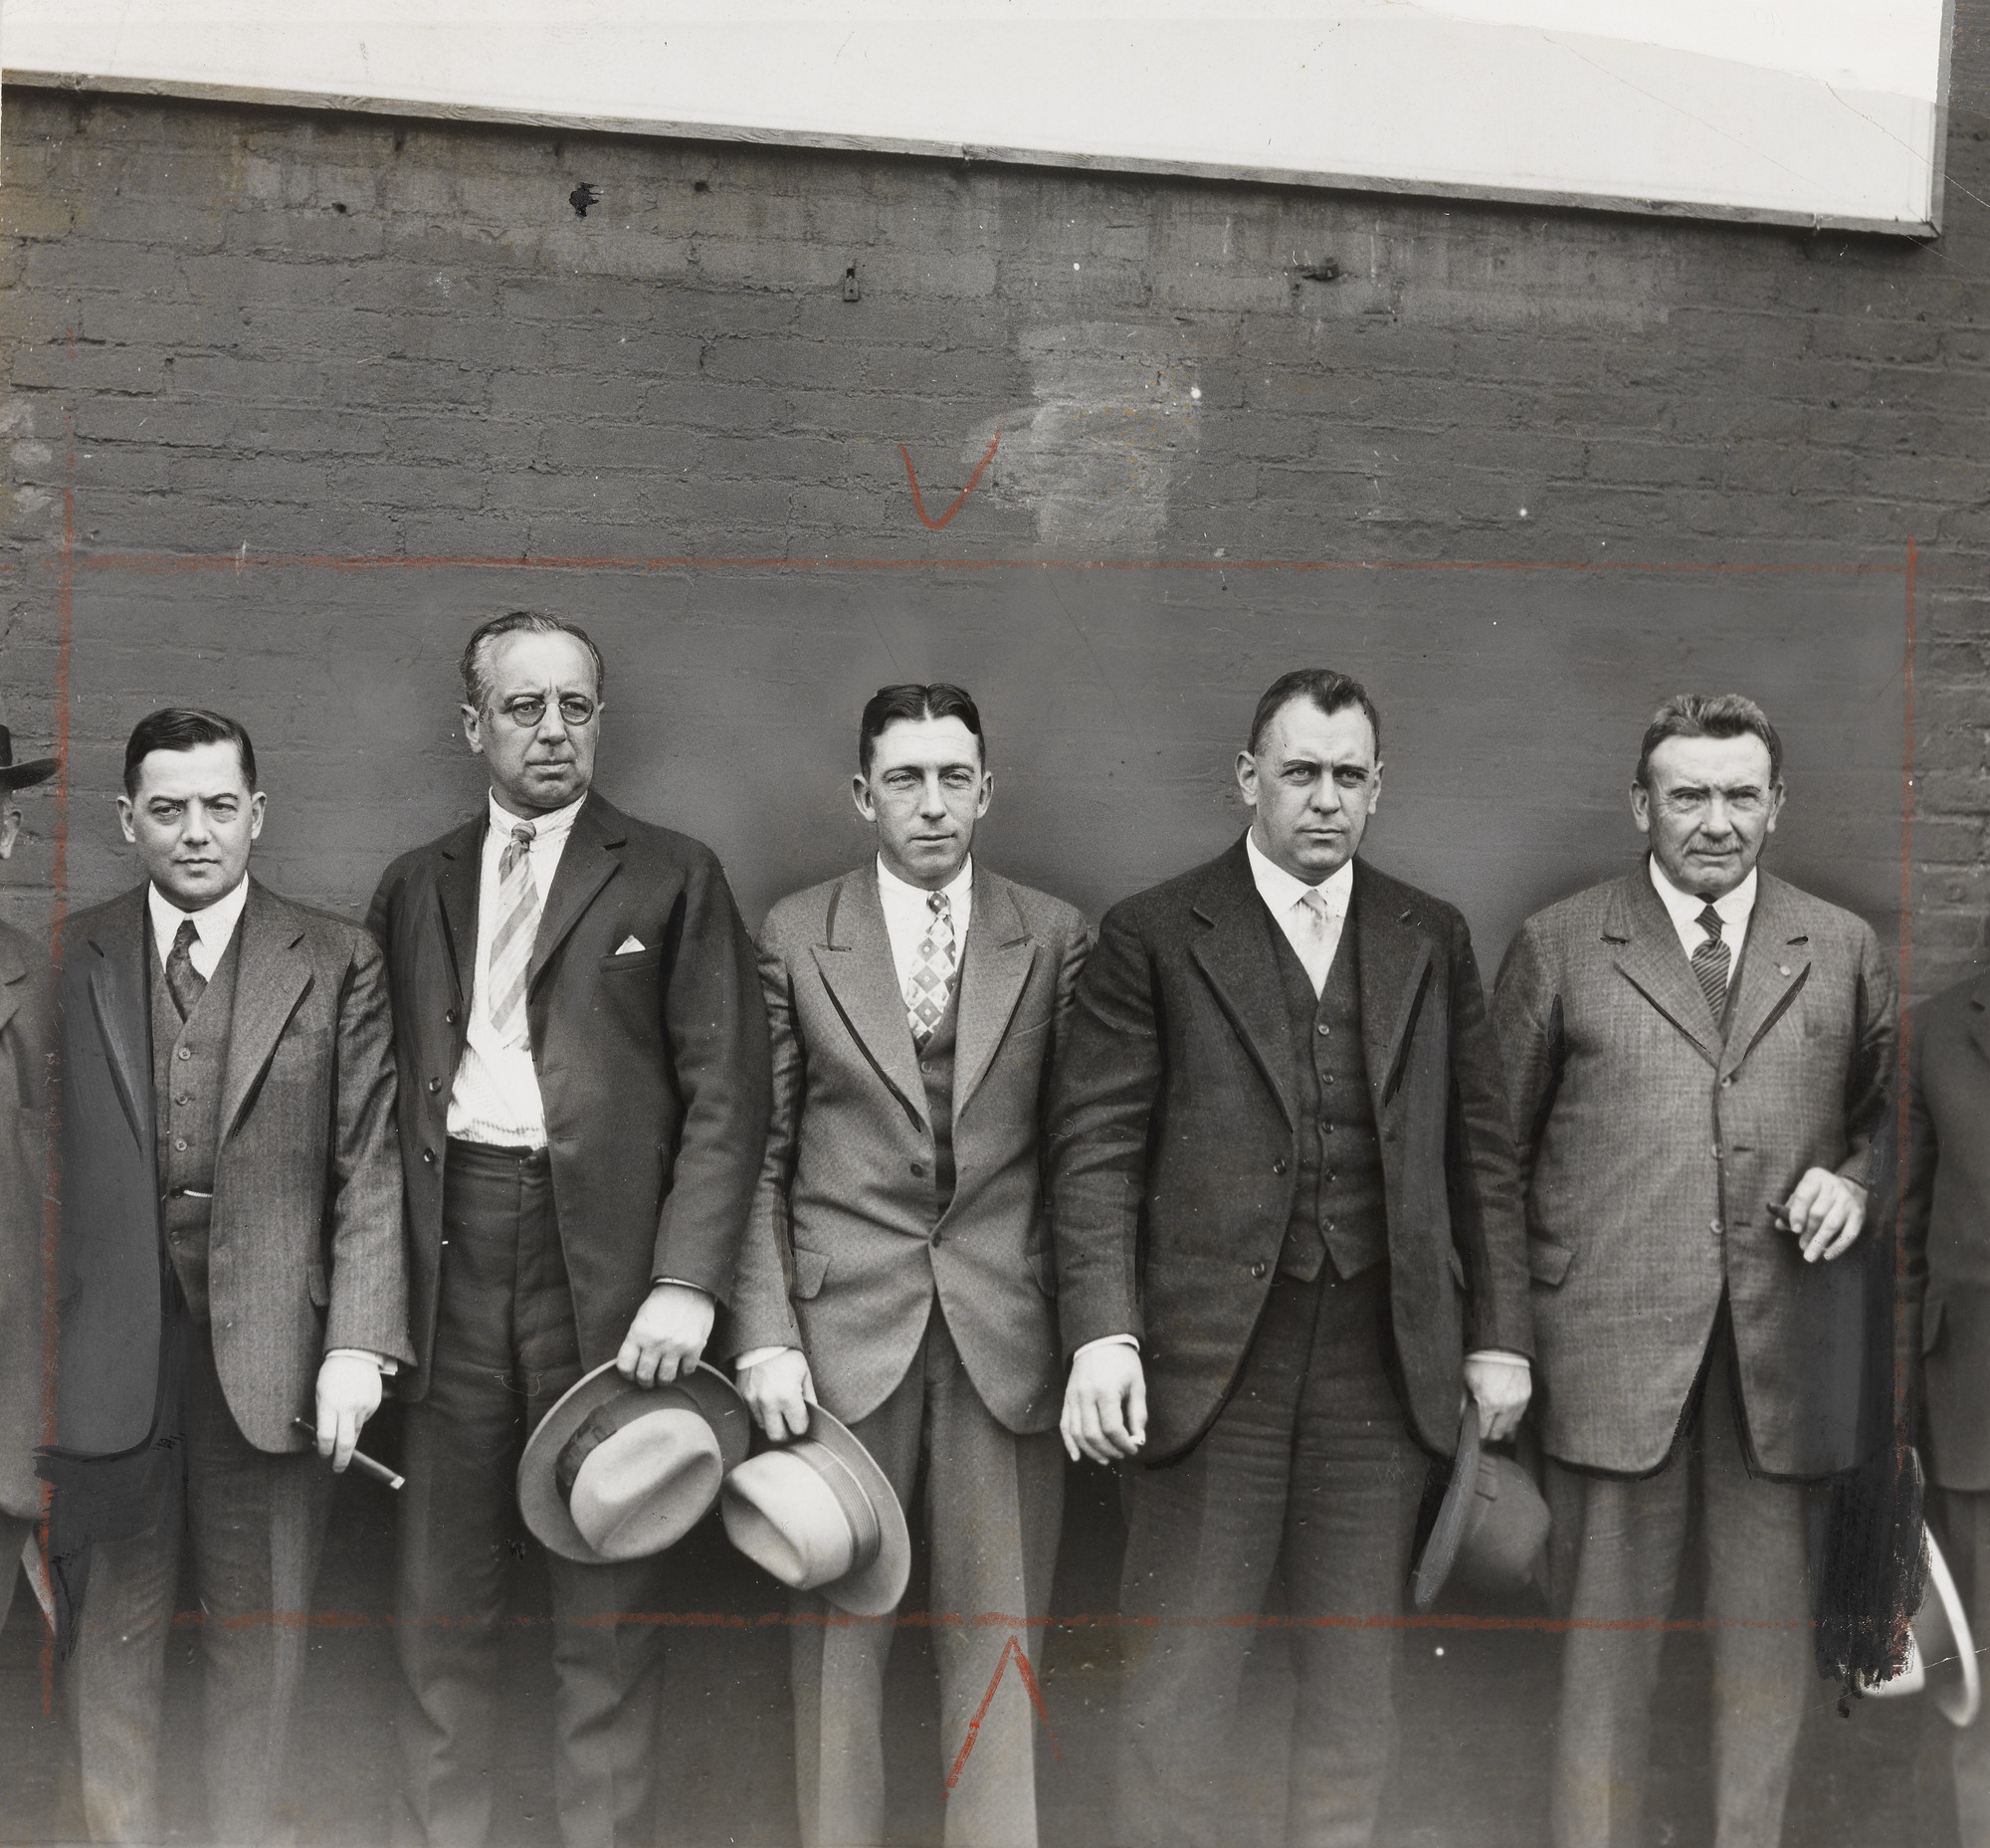 Times Wide World Photos. Men Against Wall. 1927